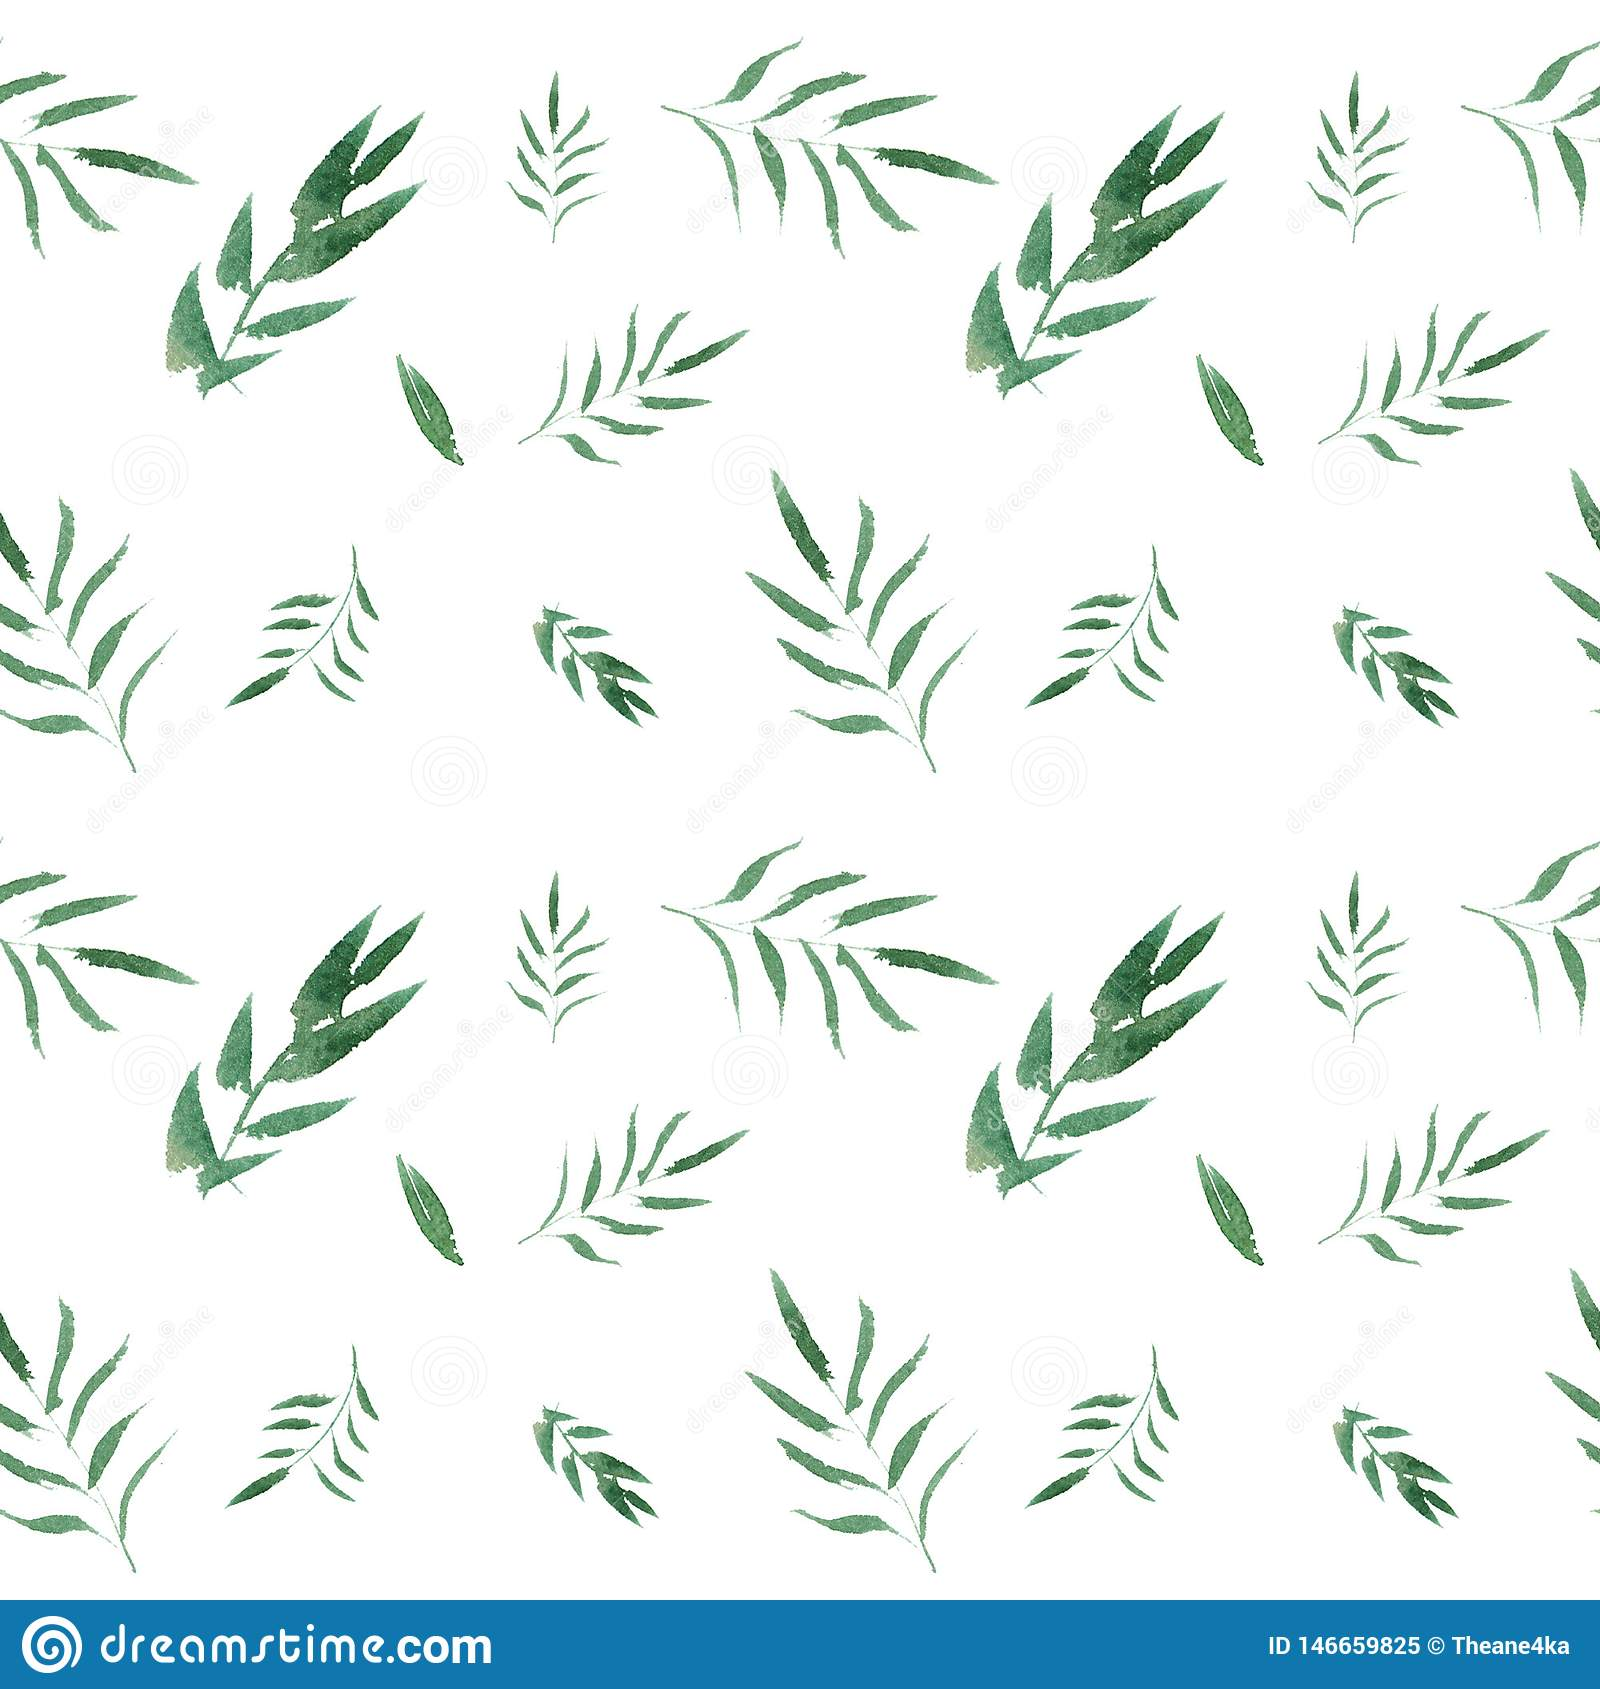 Seamless watercolor floral pattern with green leaves